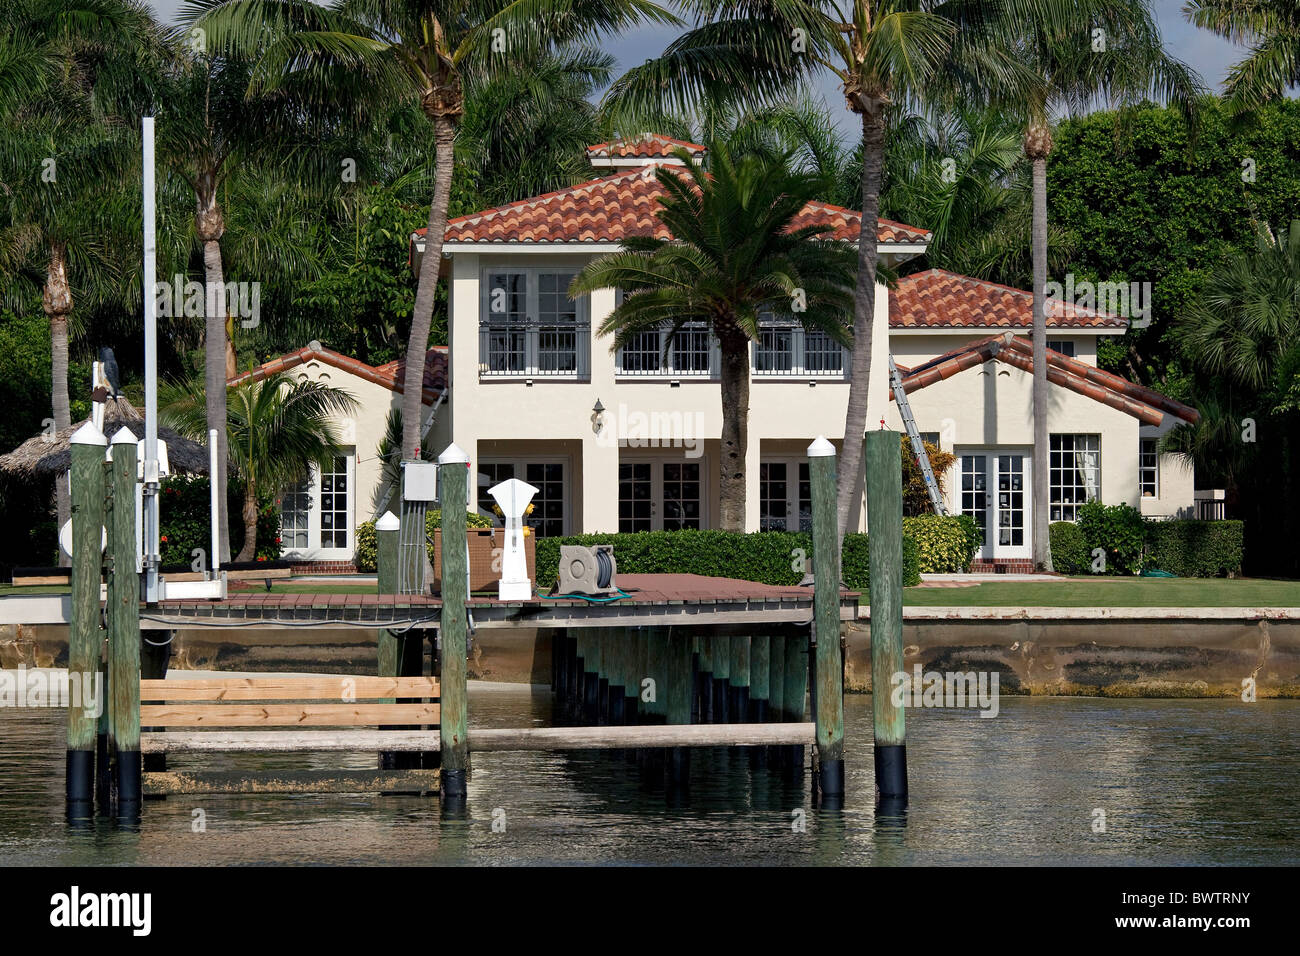 Luxury waterfront mansion in west palm beach florida usa